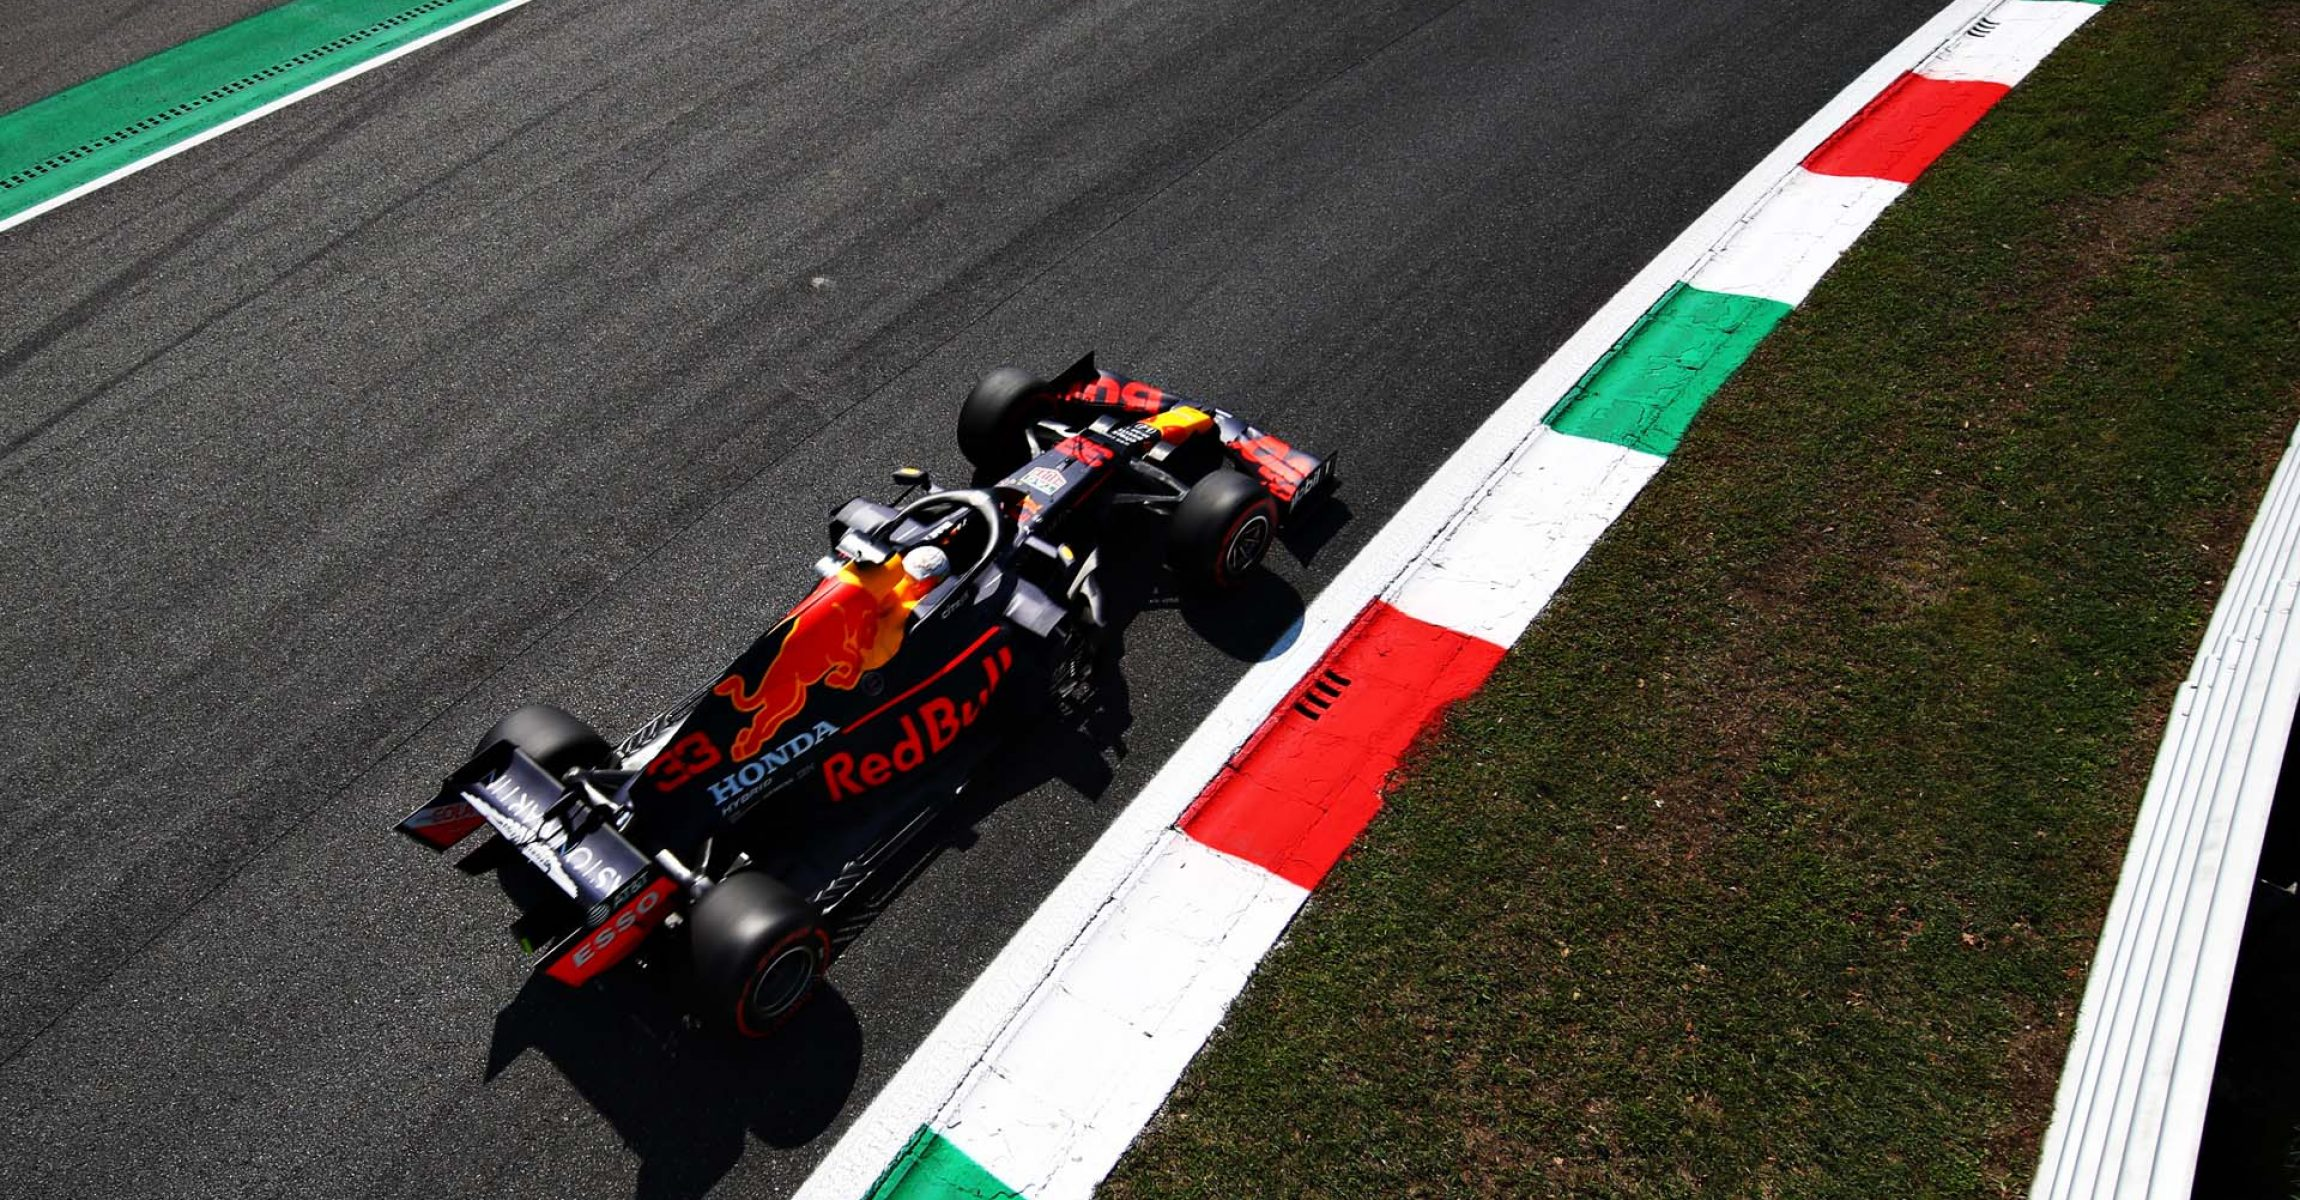 MONZA, ITALY - SEPTEMBER 05: Max Verstappen of the Netherlands driving the (33) Aston Martin Red Bull Racing RB16 during final practice for the F1 Grand Prix of Italy at Autodromo di Monza on September 05, 2020 in Monza, Italy. (Photo by Mark Thompson/Getty Images)